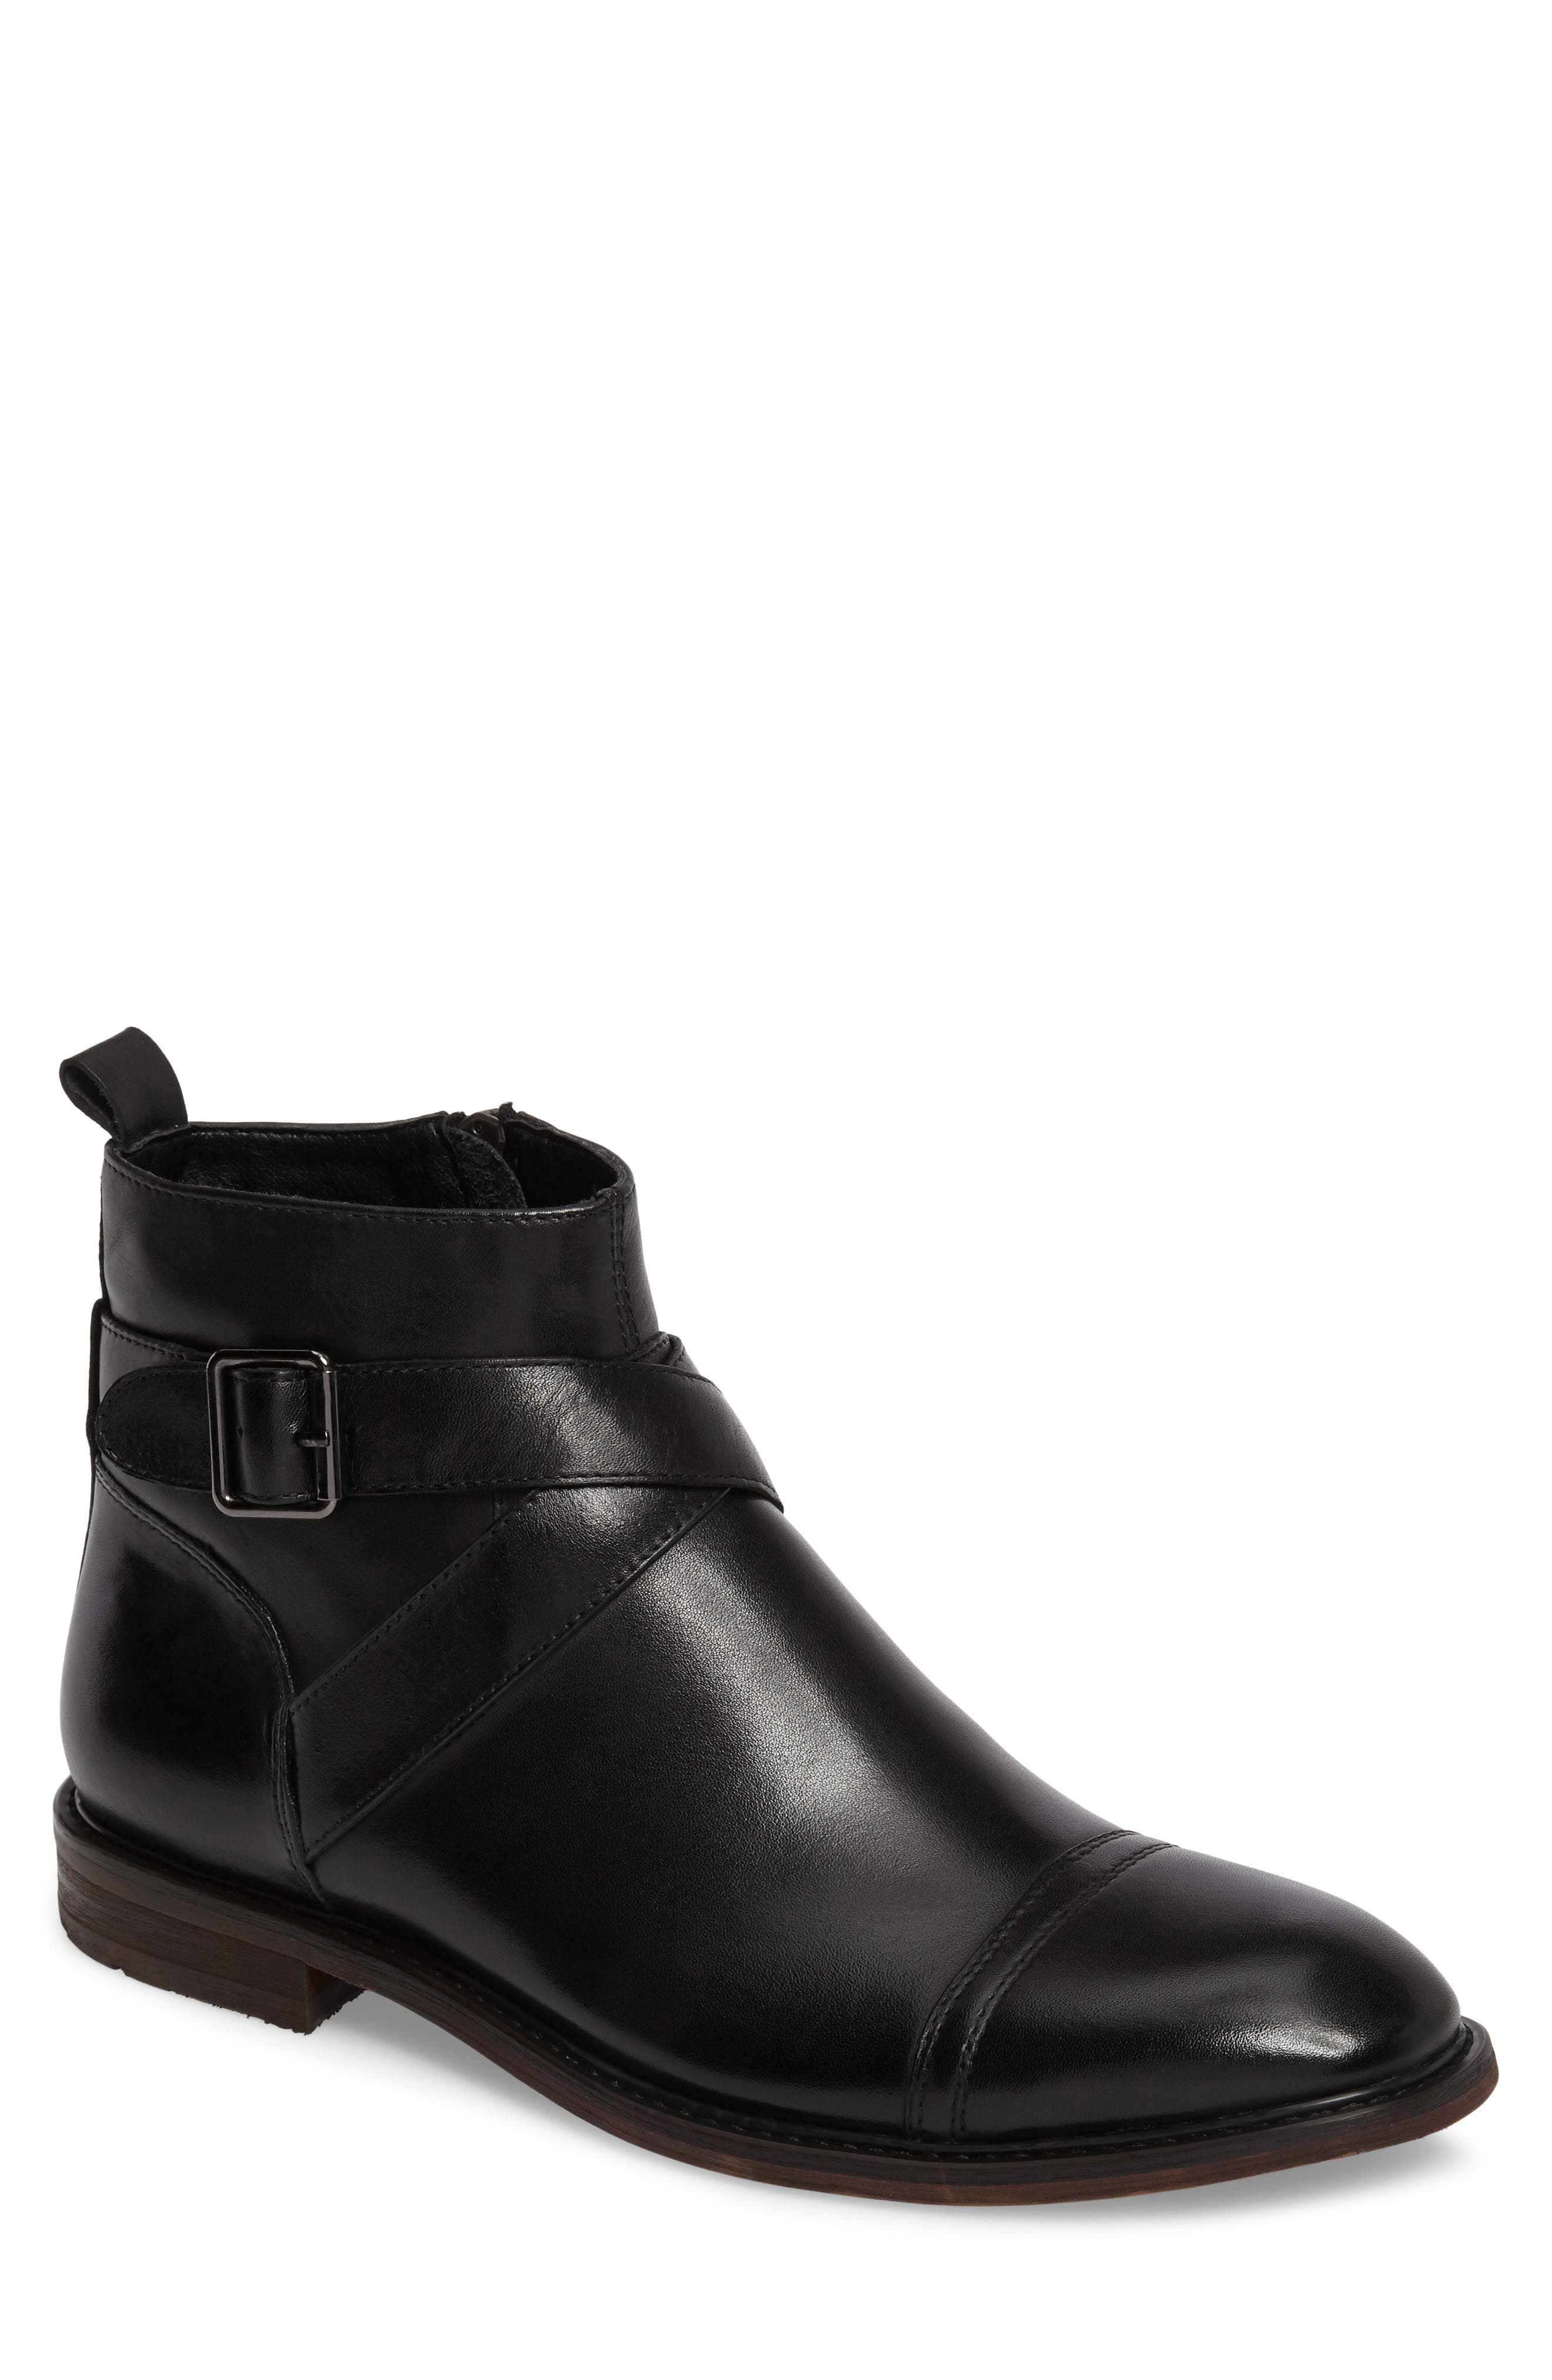 Edmond Zip Boot,                         Main,                         color, Black Leather